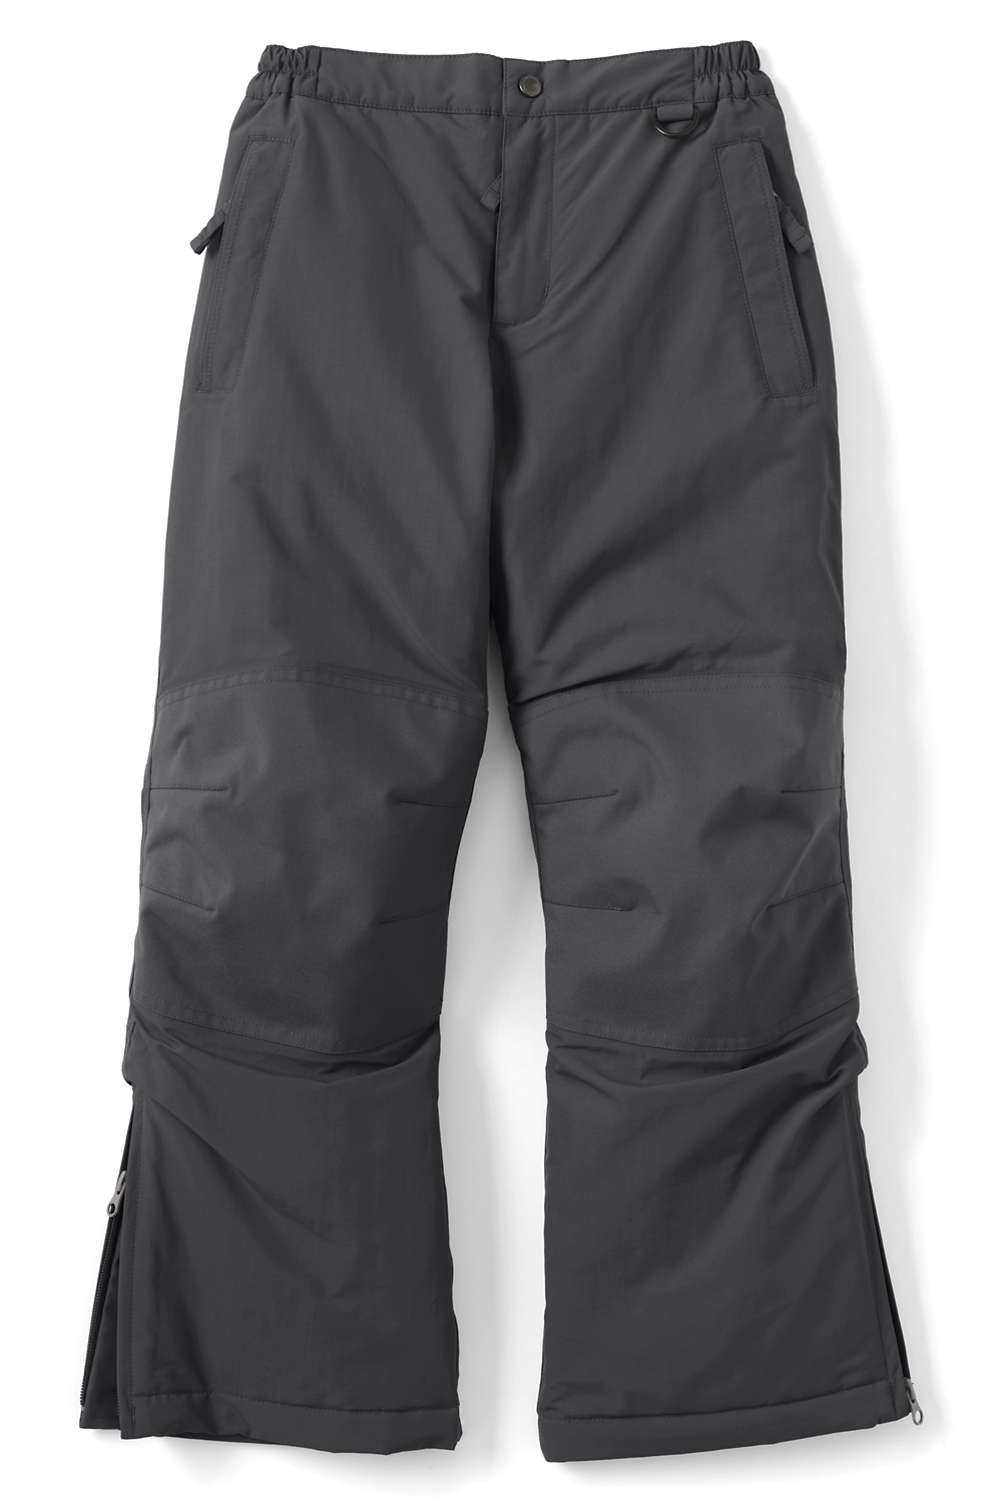 16c56acd1 Boys Squall Waterproof Iron Knee Winter Snow Pants